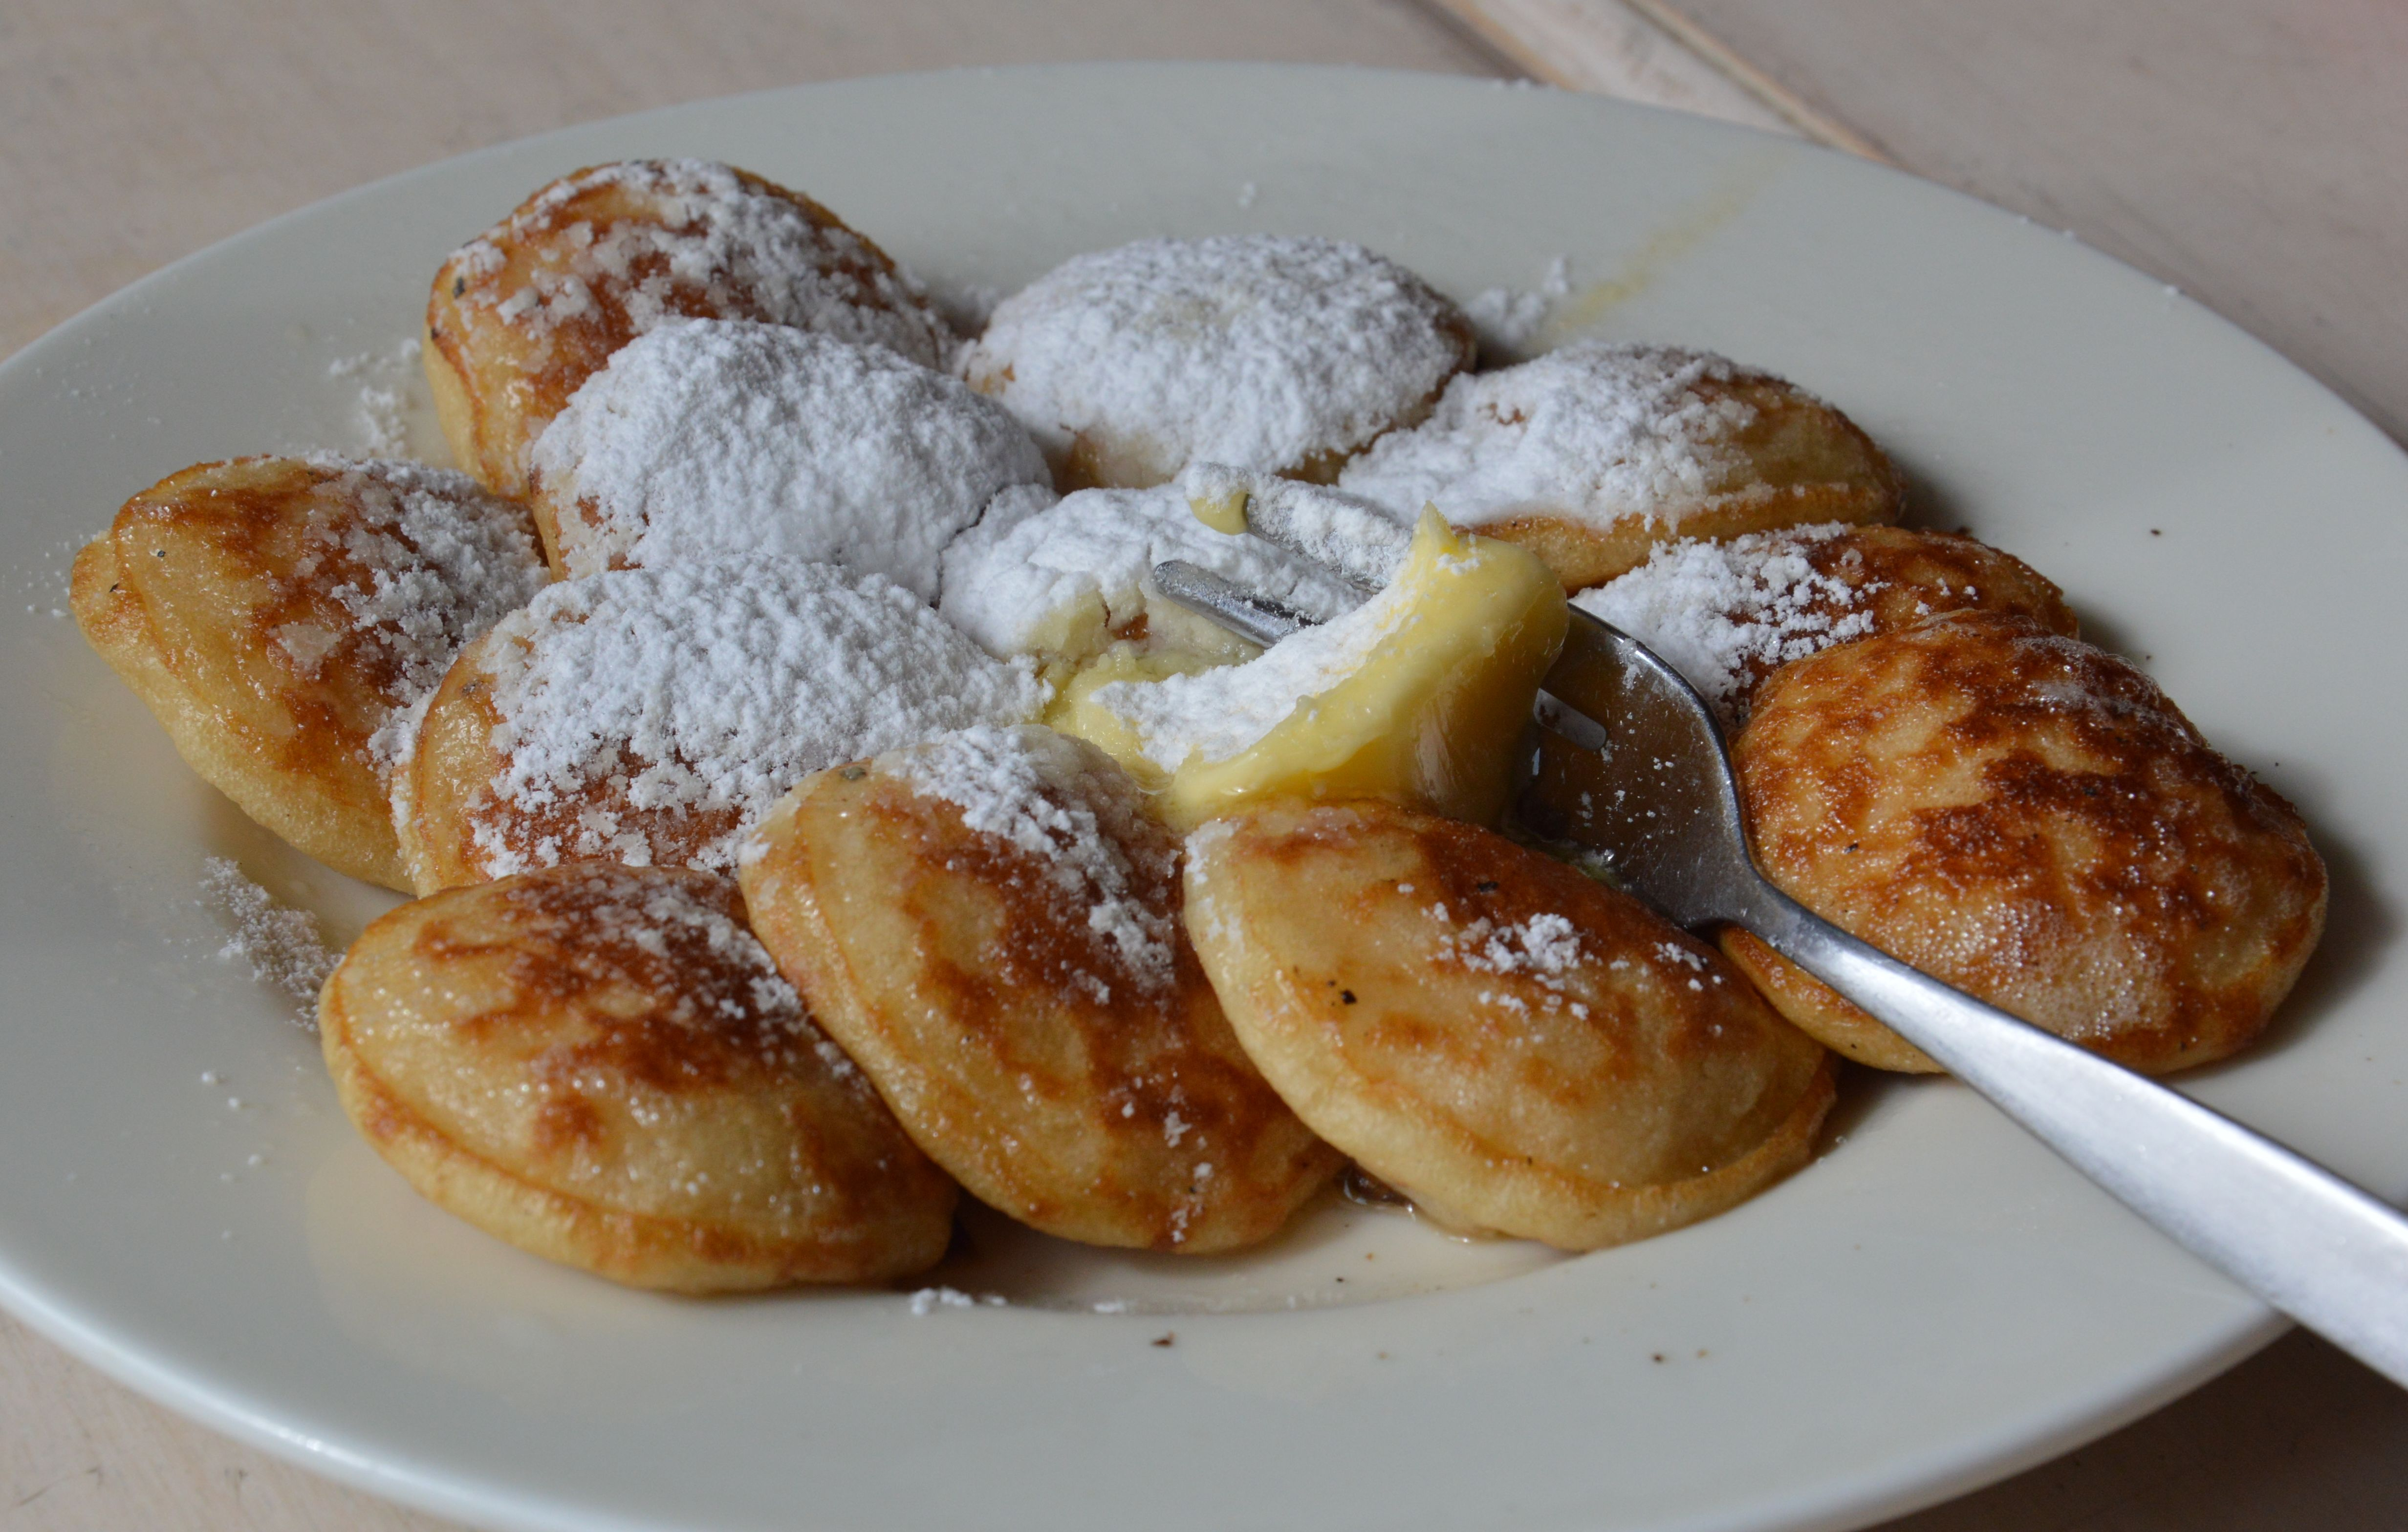 Couch To 5k Newtownards Poffertjes The Complete Information And Online Sale With Free